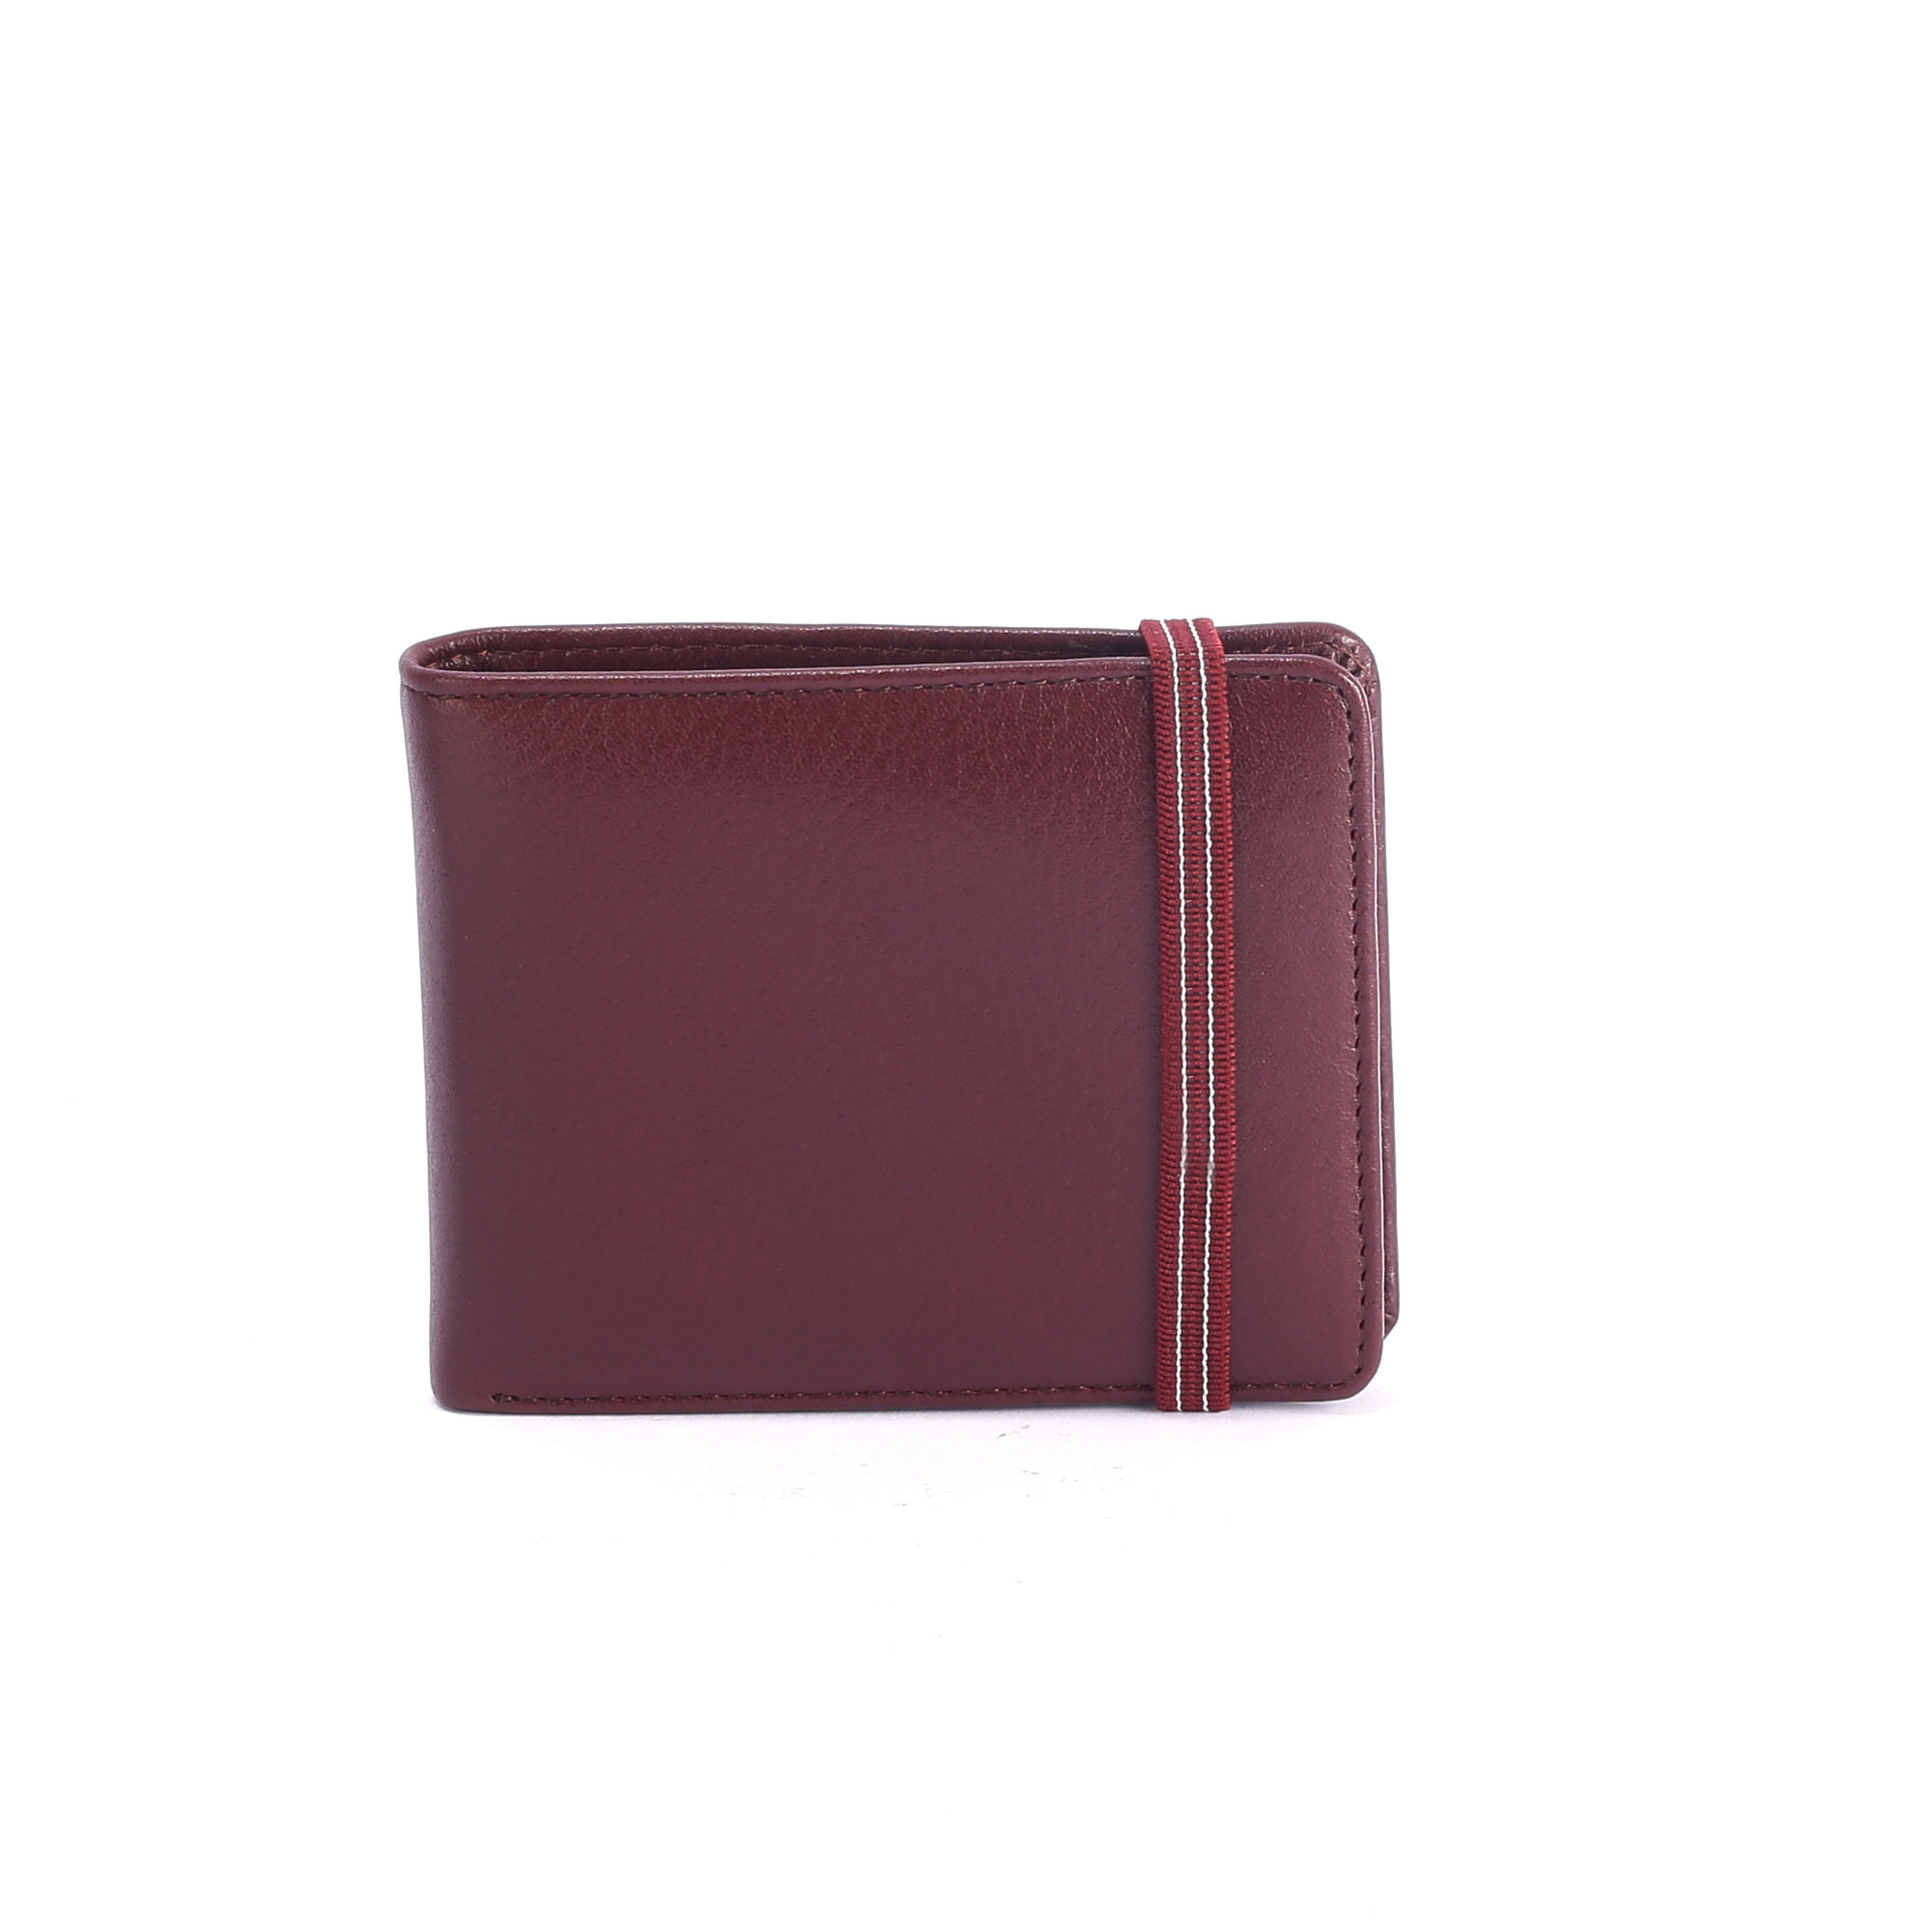 Stock Genuine Leather 22 card Slot Magic Wallet With Elastic Band Cash Holder Wallet Made in Turkey